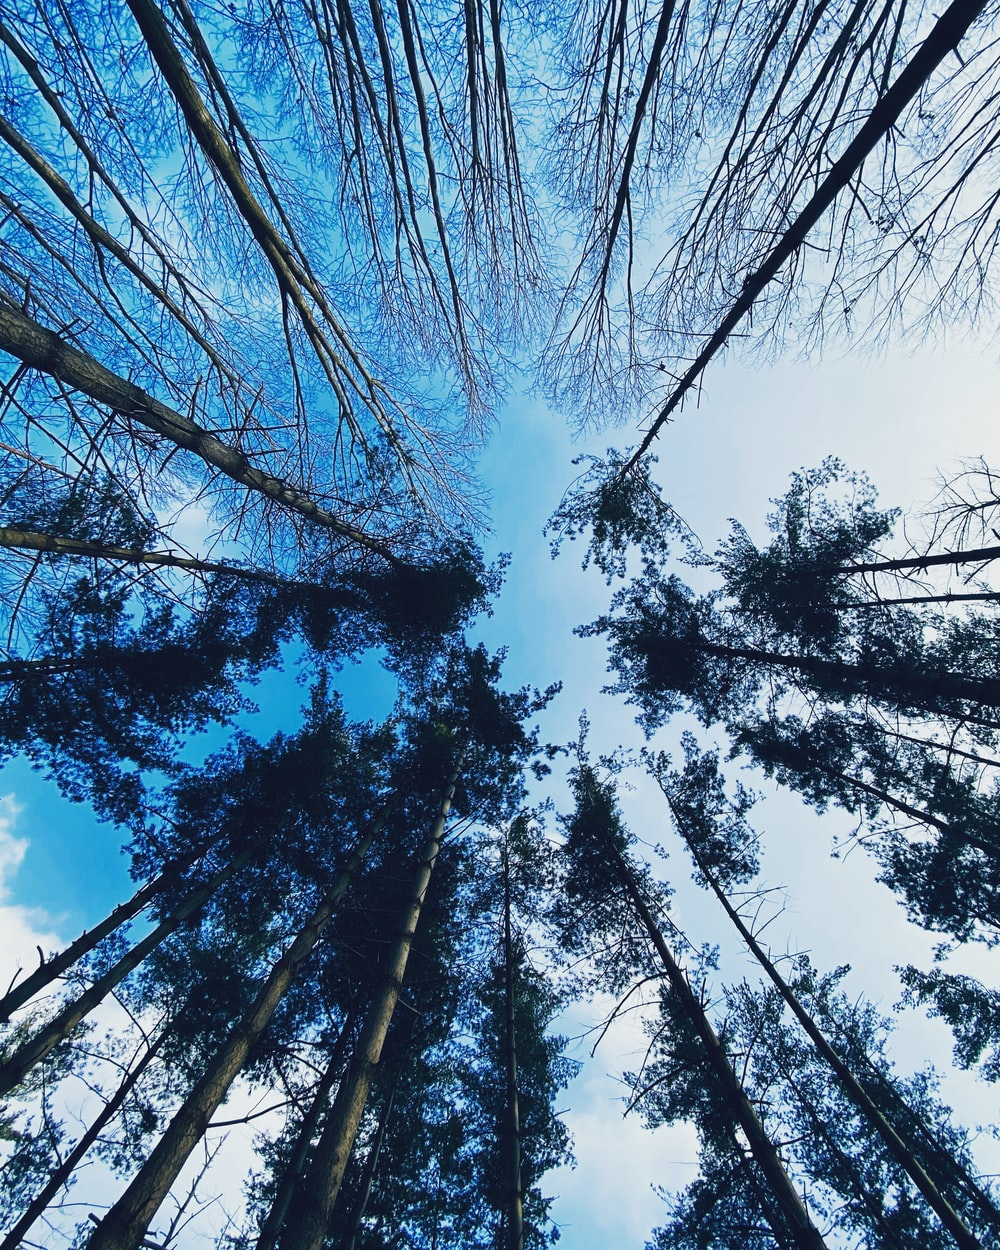 low angle photography of trees under blue sky during daytime